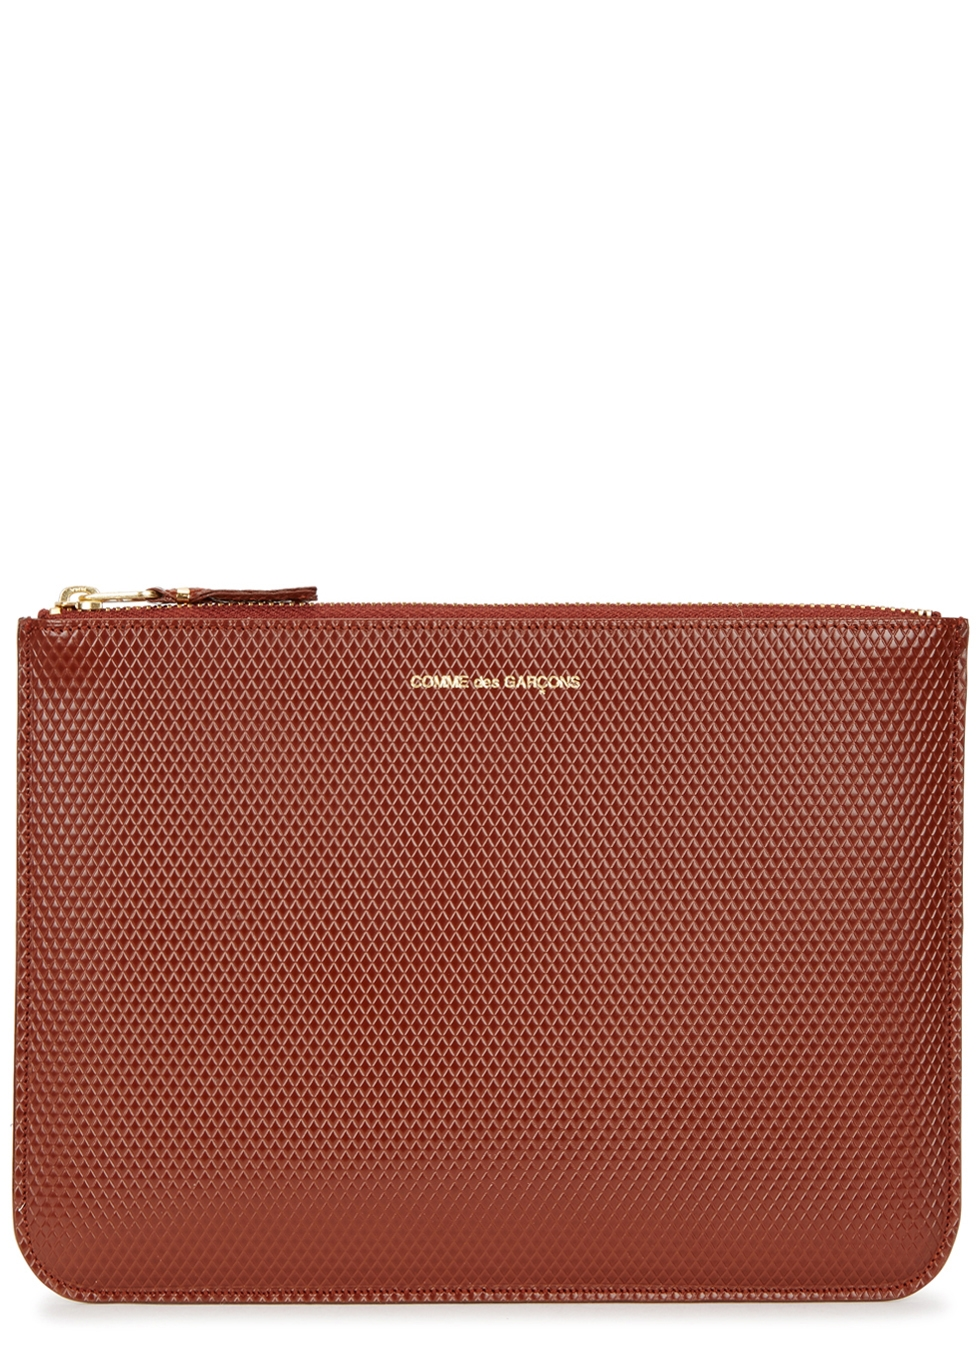 Brown embossed leather pouch - Comme des Garçons